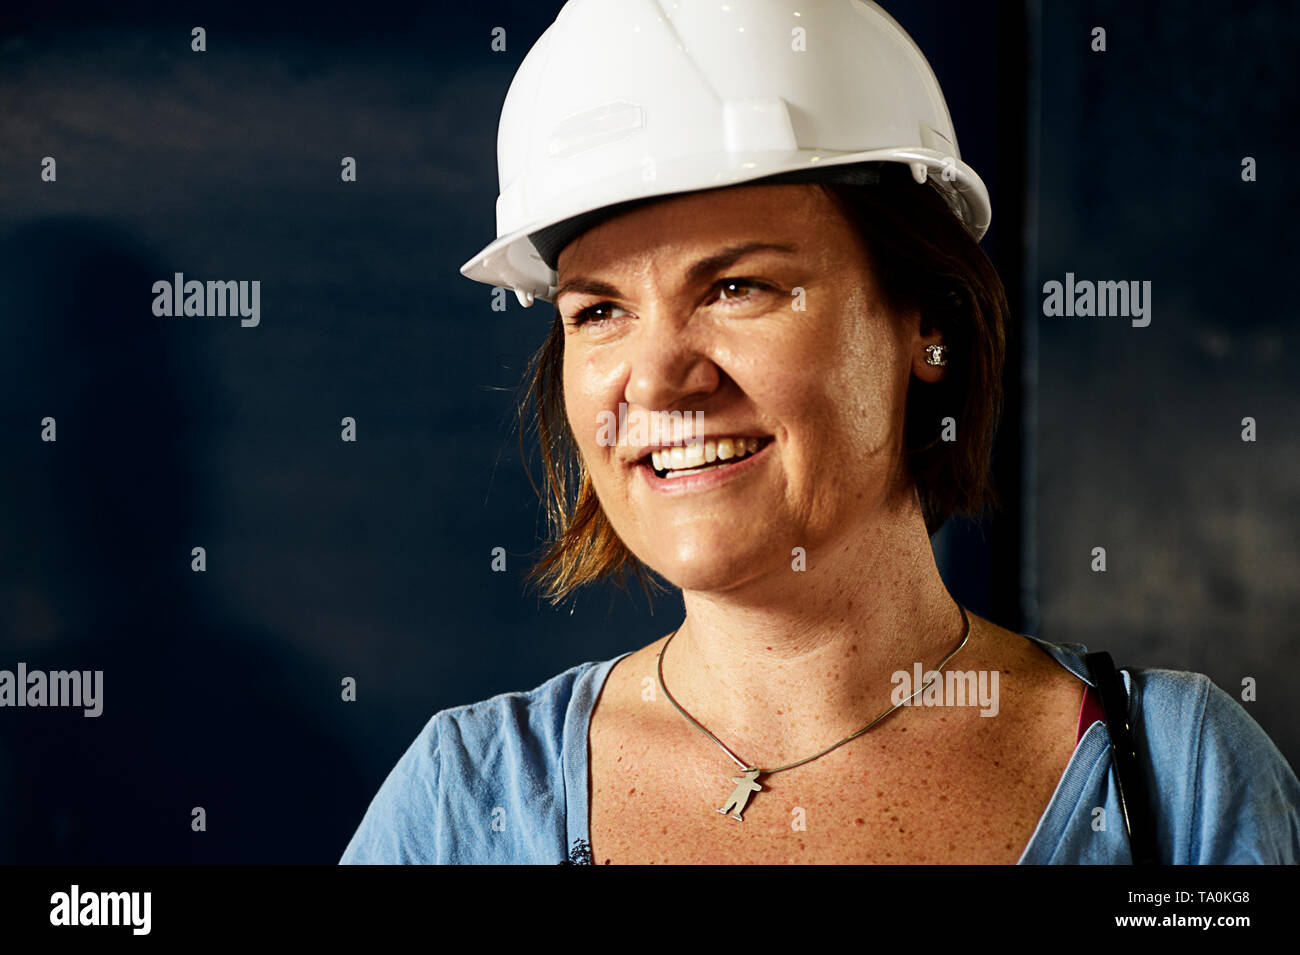 Beautiful portrait of a female project manager wearing a hard hat during an on site visit at the construction site - Stock Image